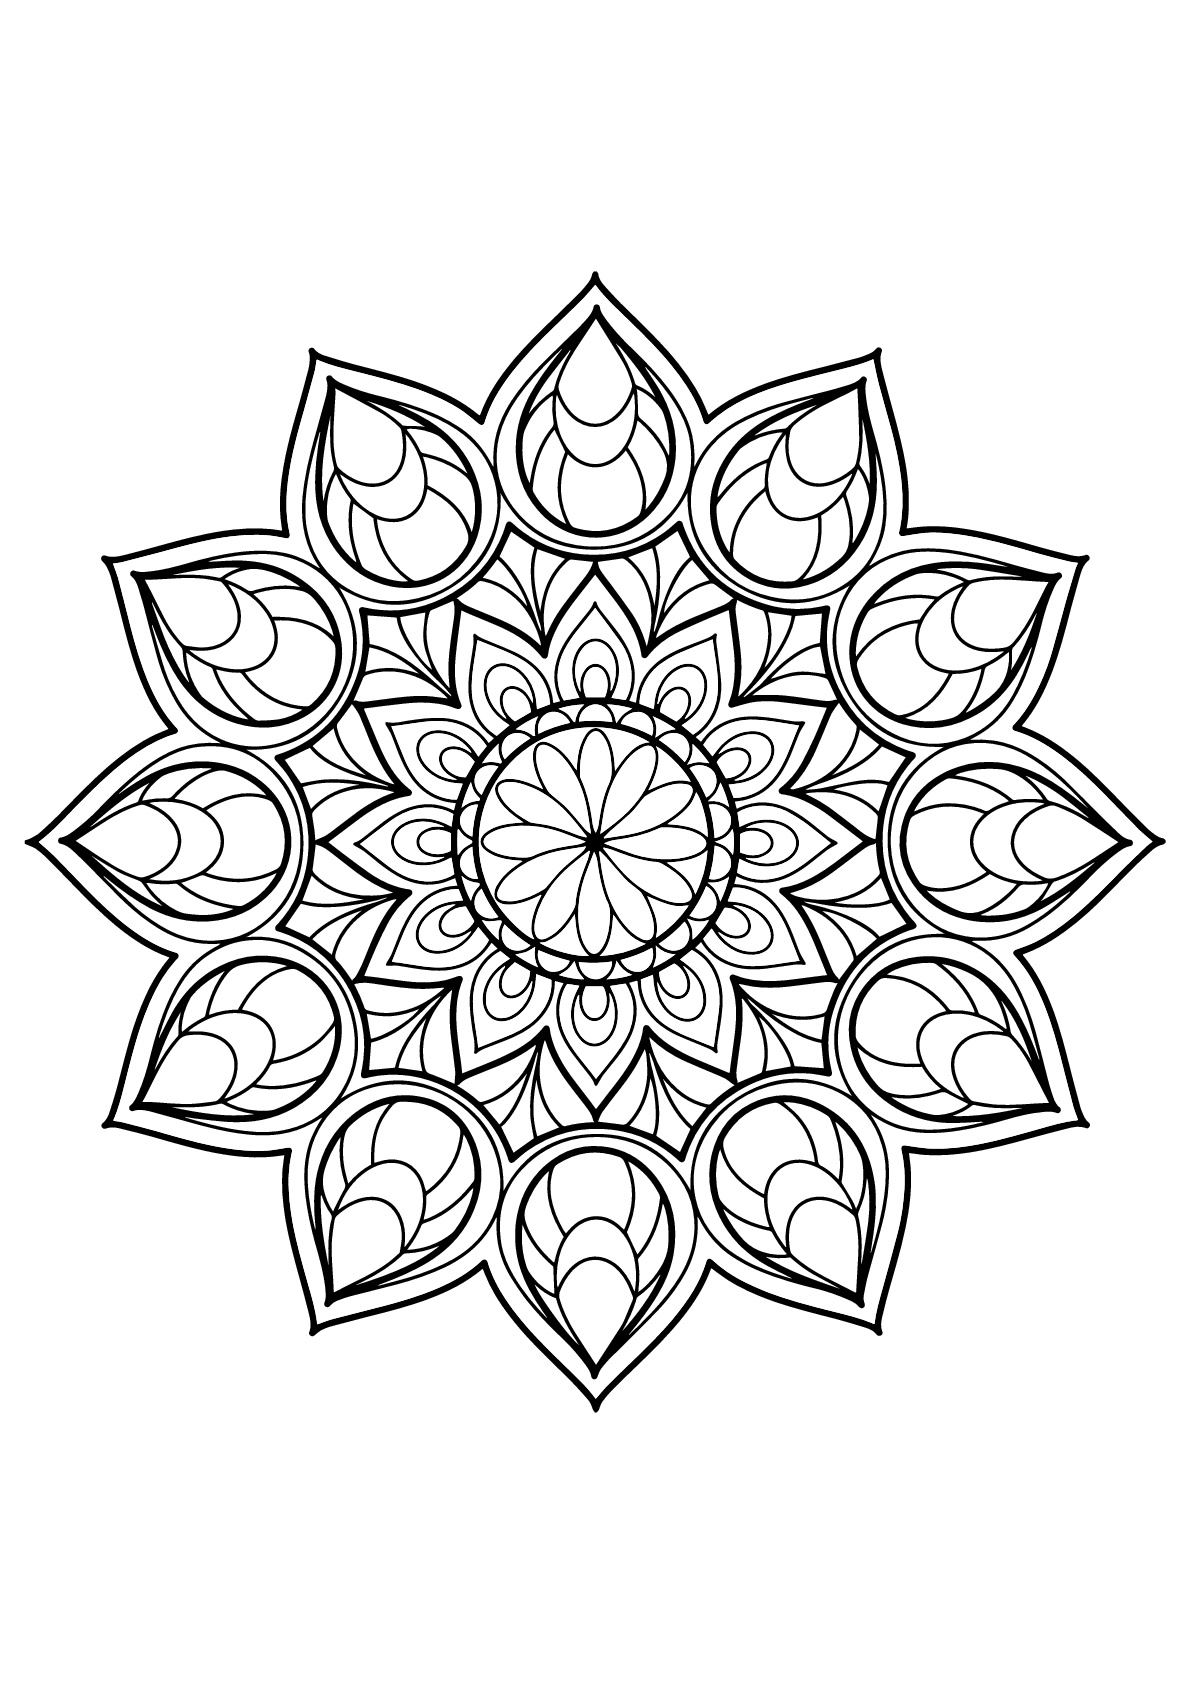 Mandalas free to color for kids